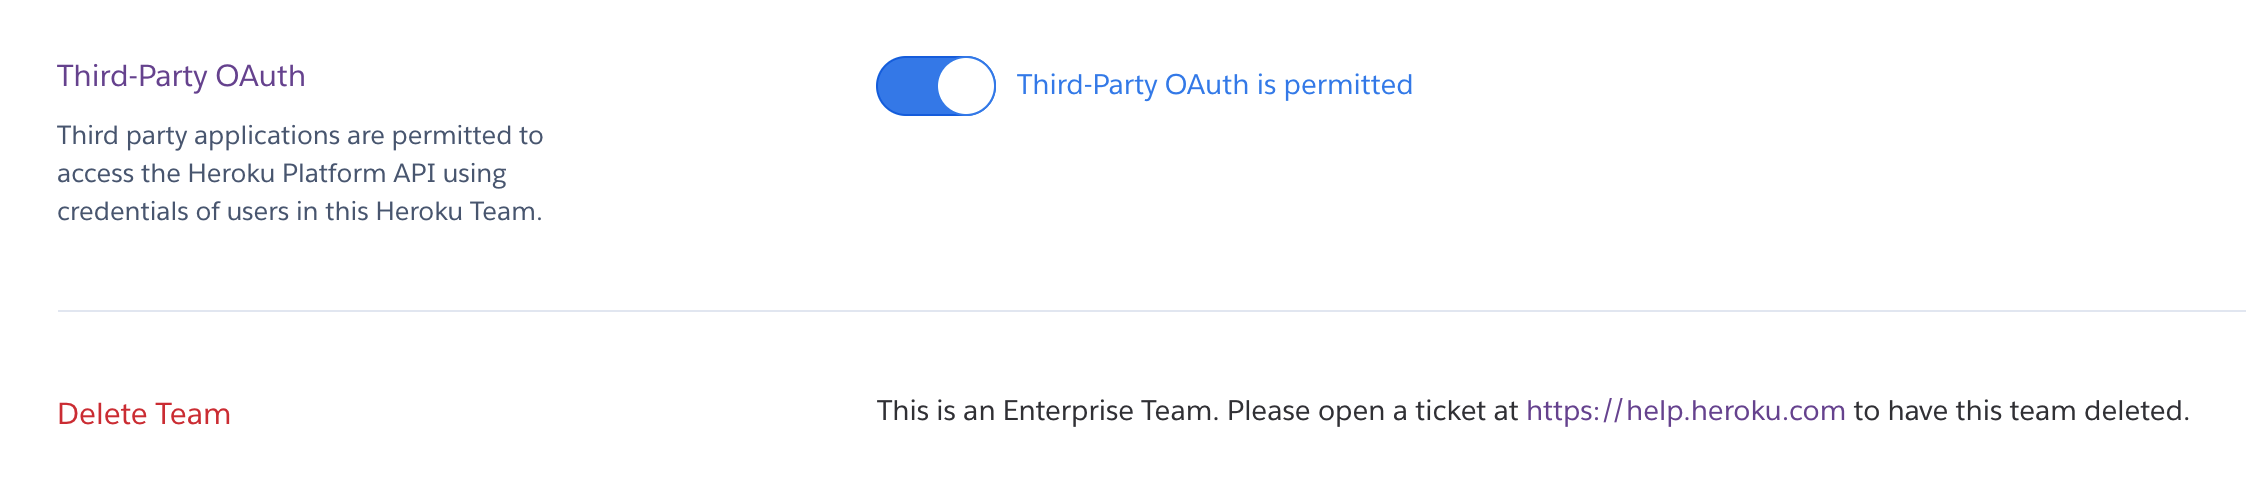 Limiting access to apps via OAuth